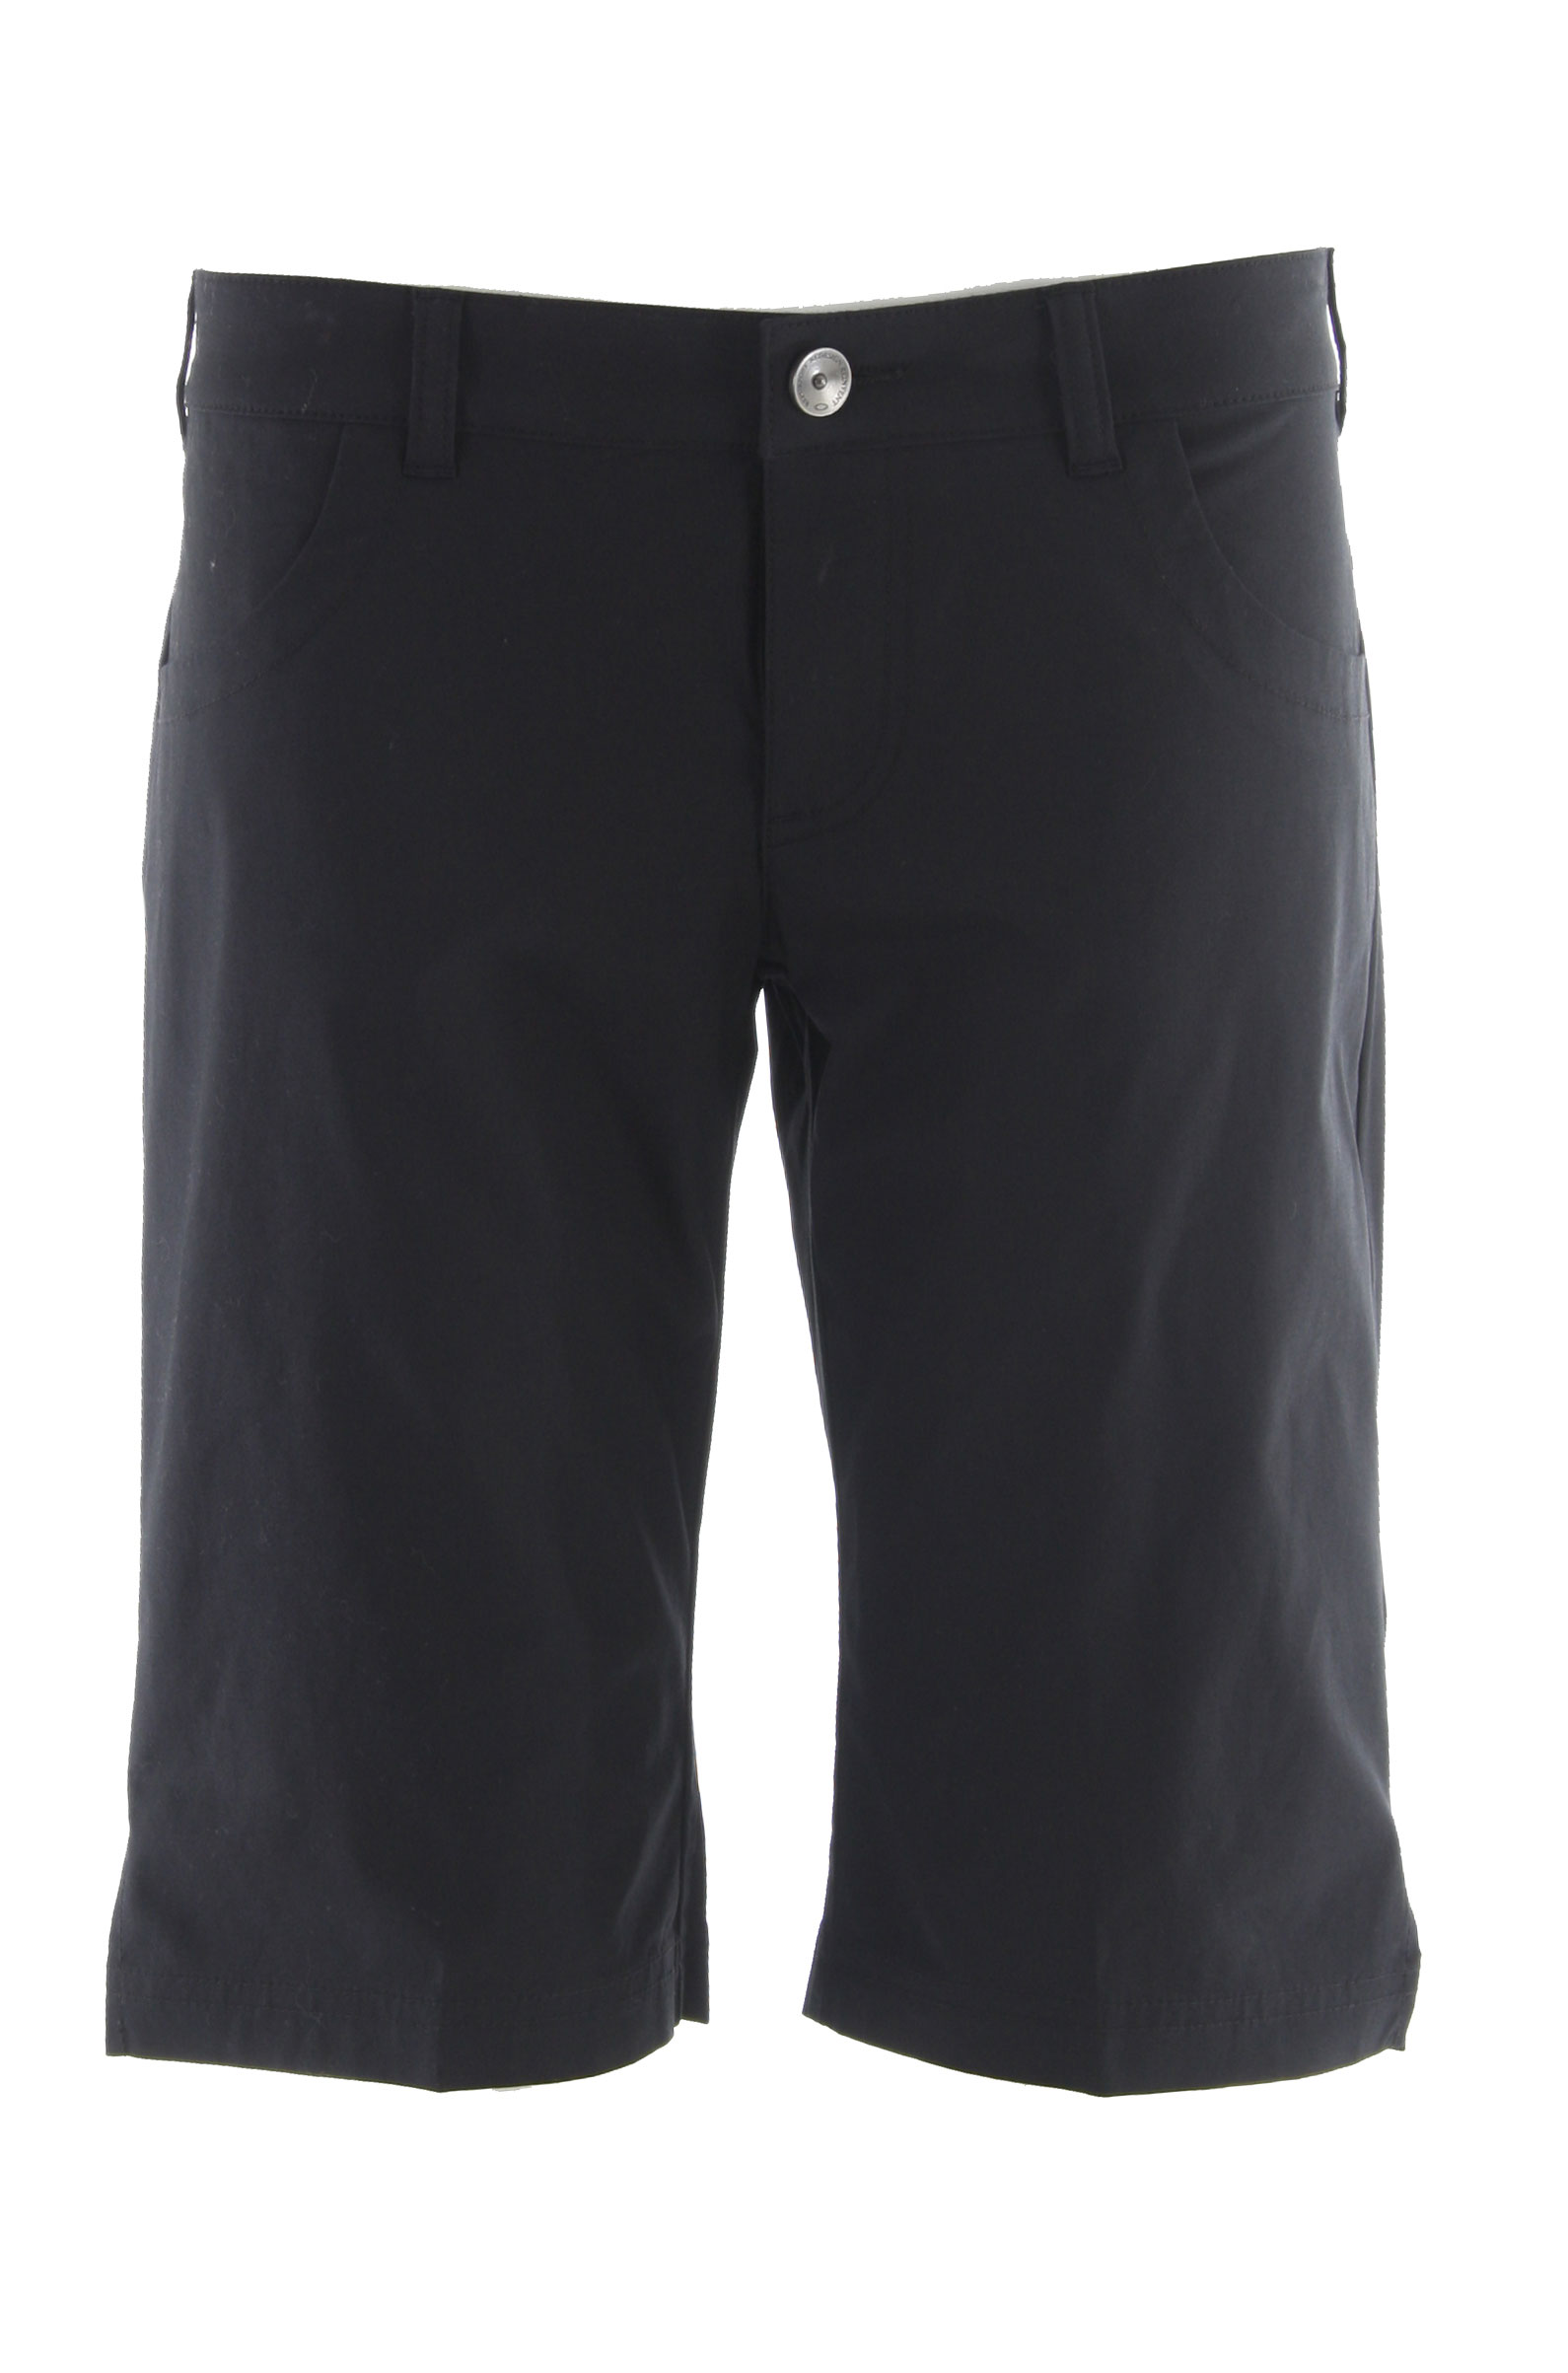 "Key Features of the Oakley Walk Shorts: Solid short with zip front fly Angled front pockets Belt loops 12"" inseam Back welt pocket and embroidered logo - $35.95"